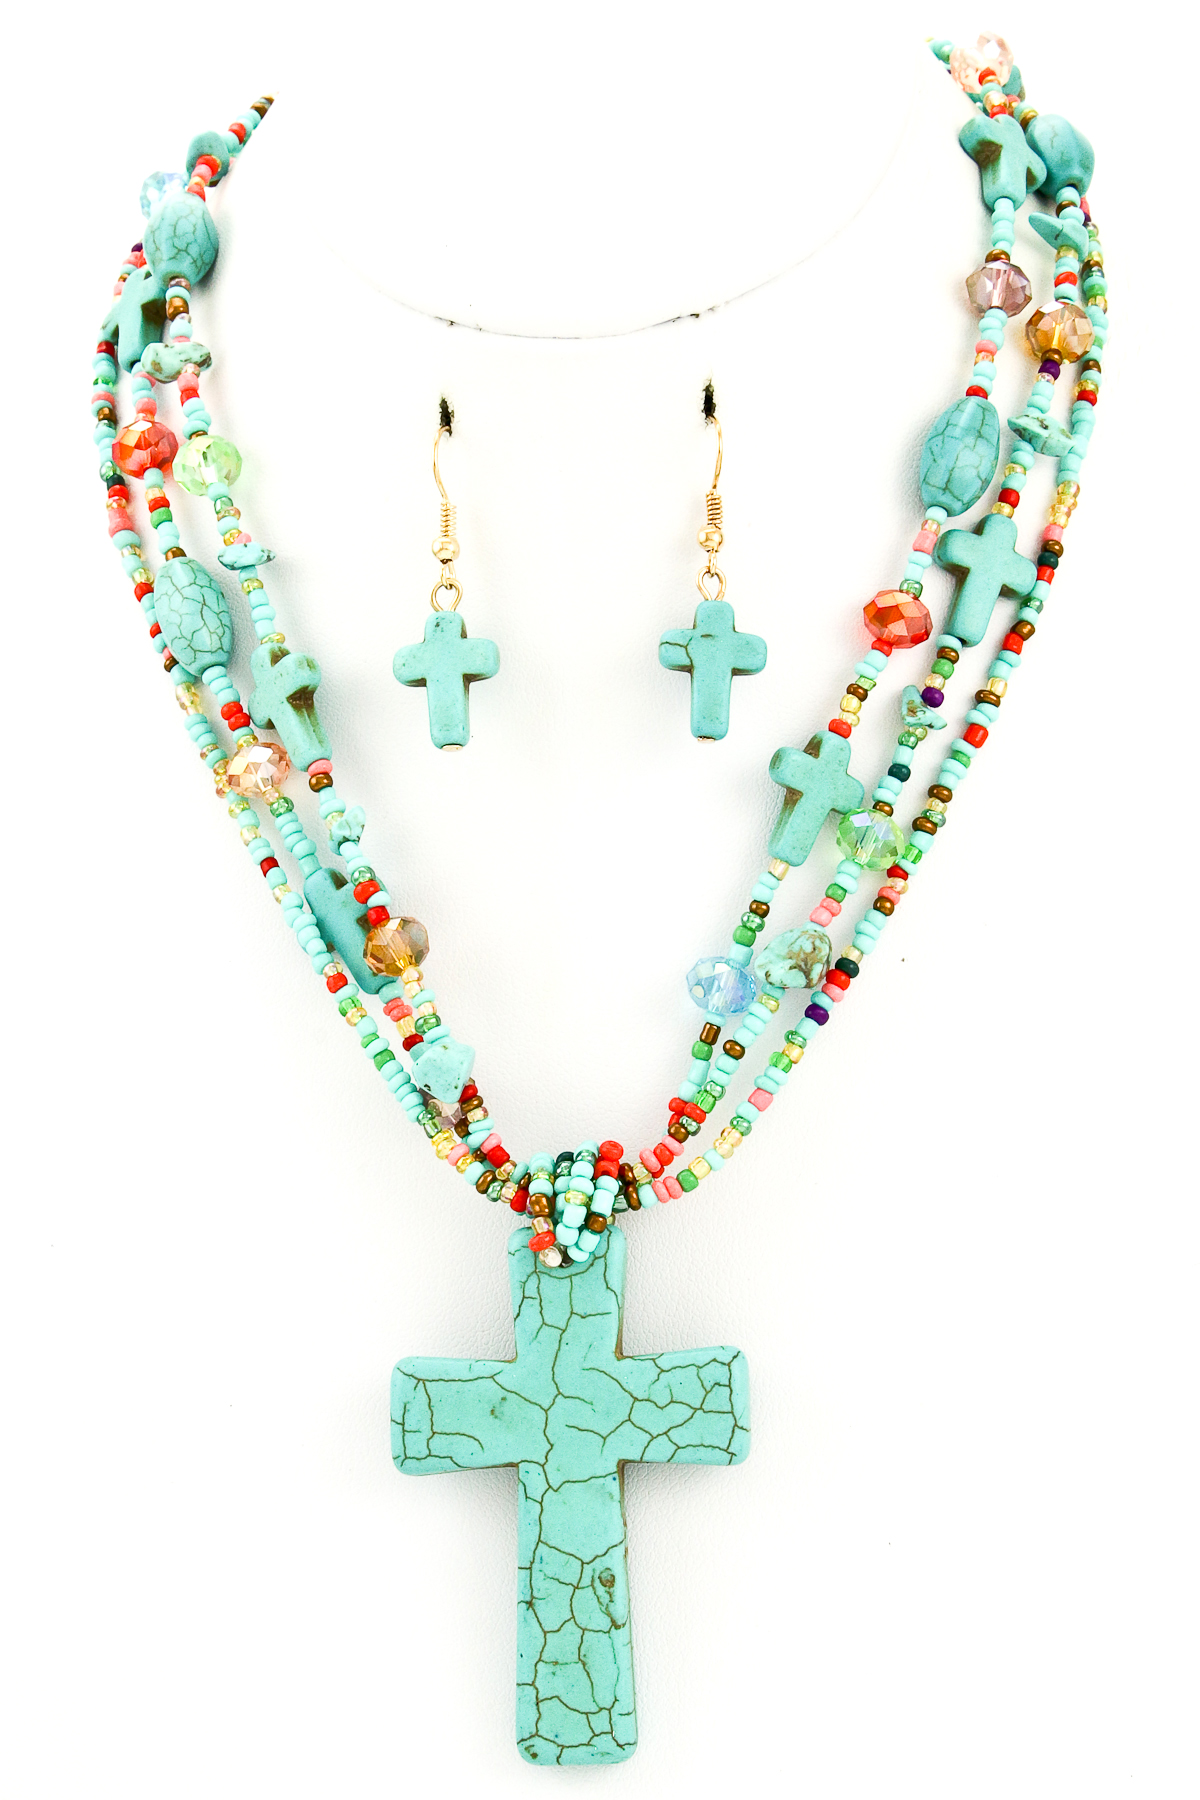 Stone Cross Seed Bead Necklace Set - Necklaces